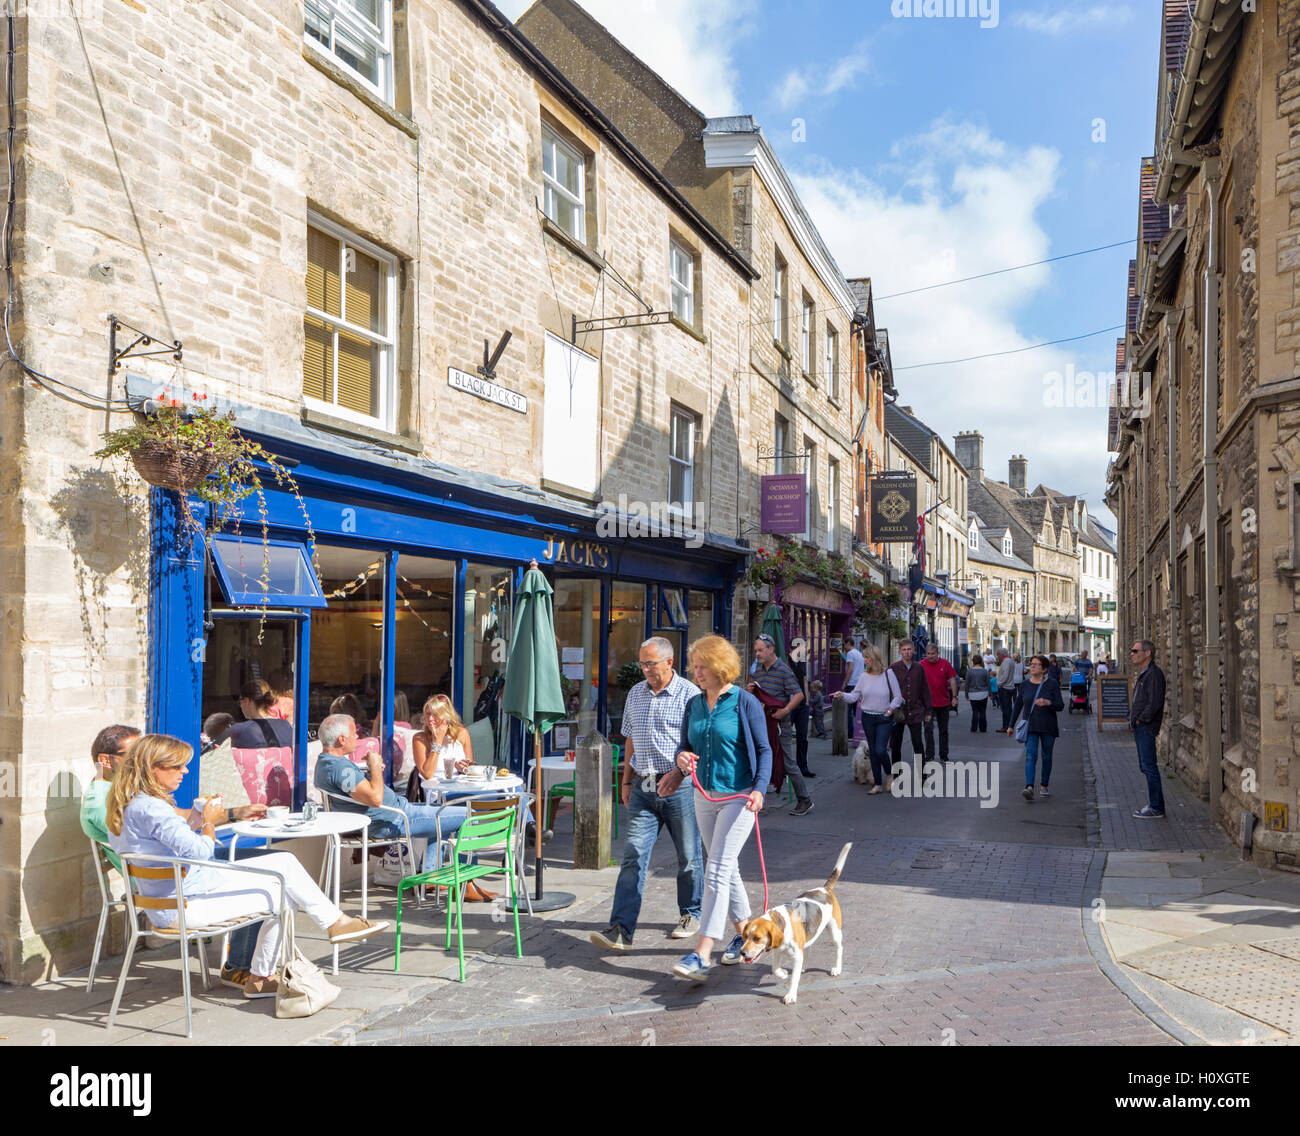 Attractive shops and cafe in the Cotswold town of Cirencester, Gloucestershire England, UK - Stock Image